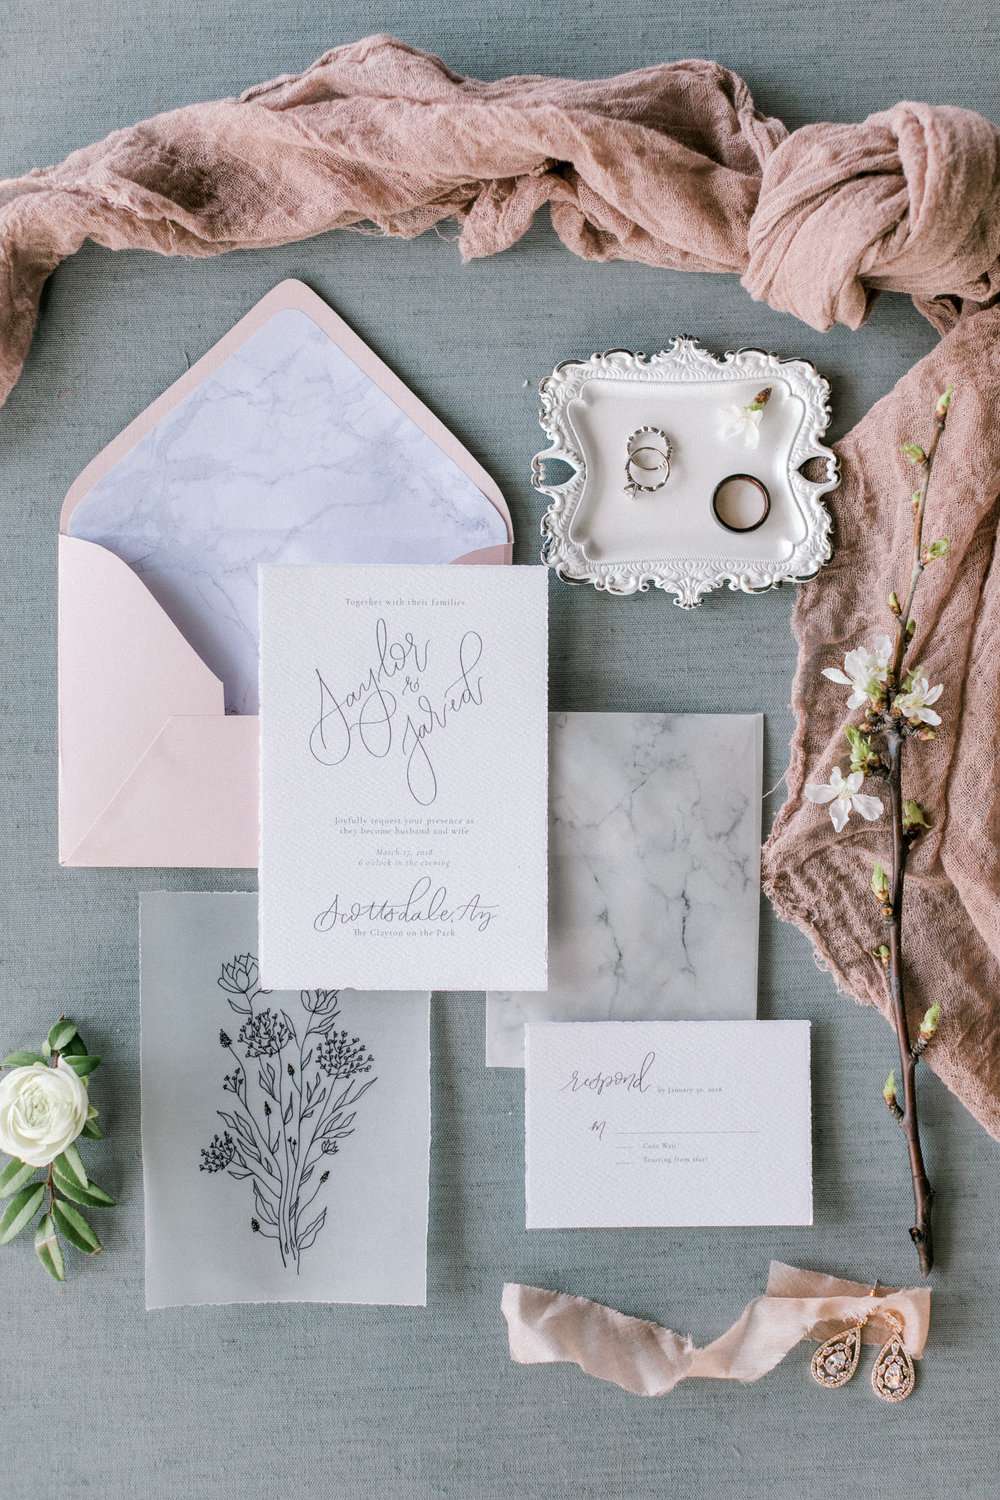 Blush and White Cherry Blossom Inspired Wedding